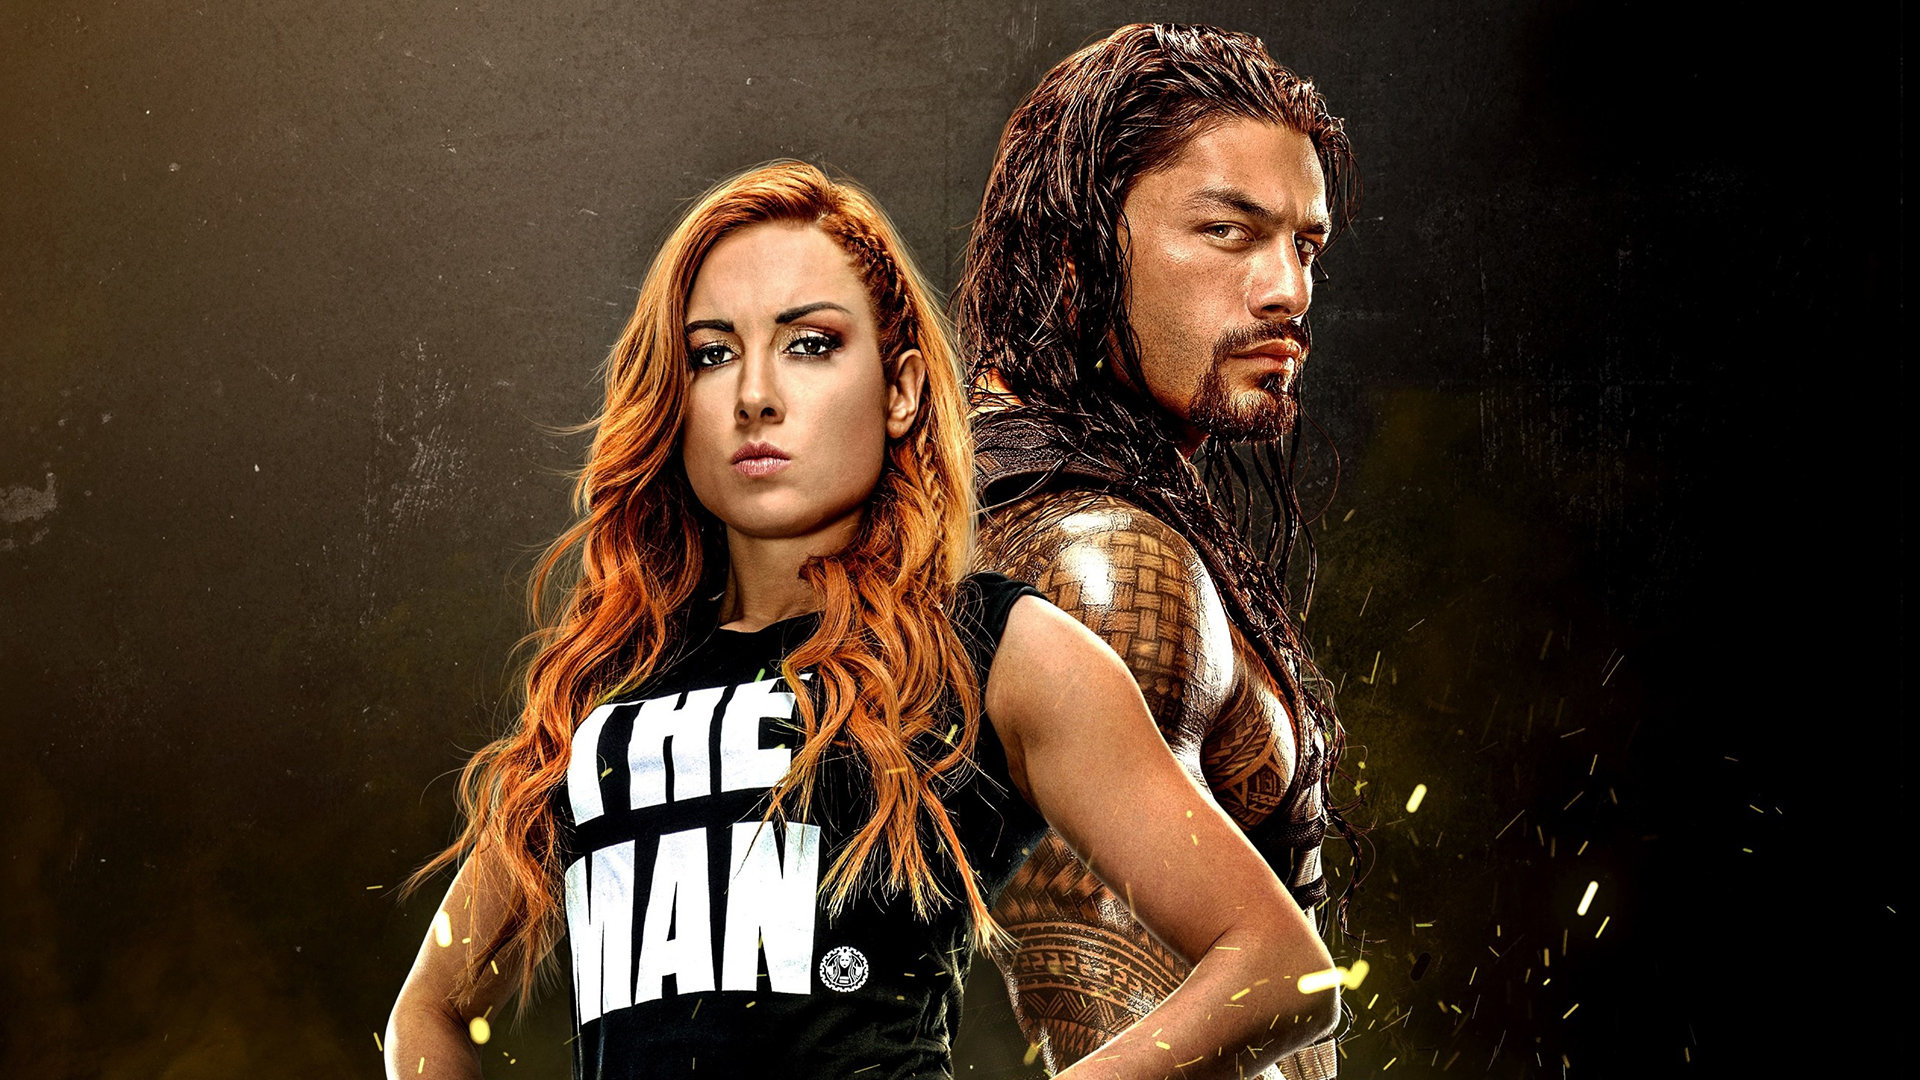 Wallpaper of Becky Lynch Roman Reigns WWE 2K20 background HD image 1920x1080